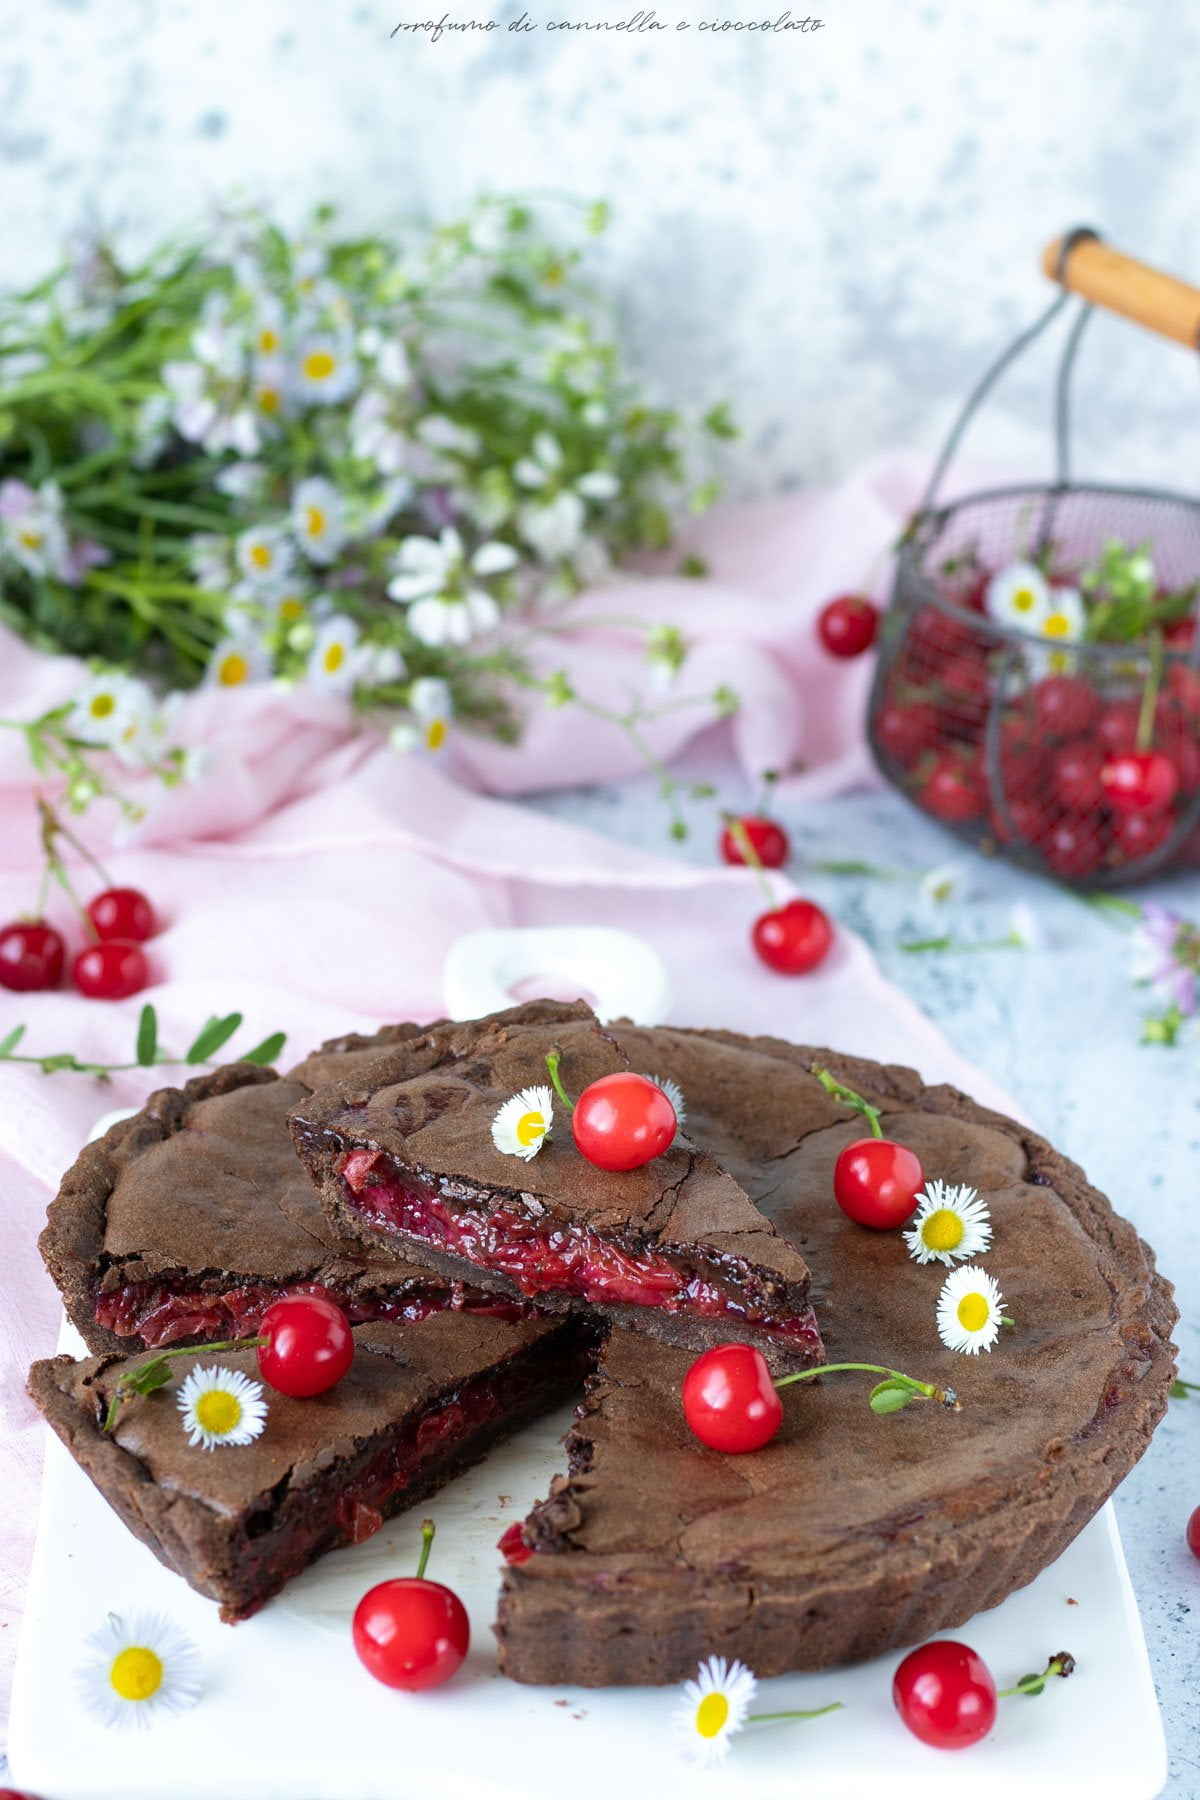 Black forest bakewell tart